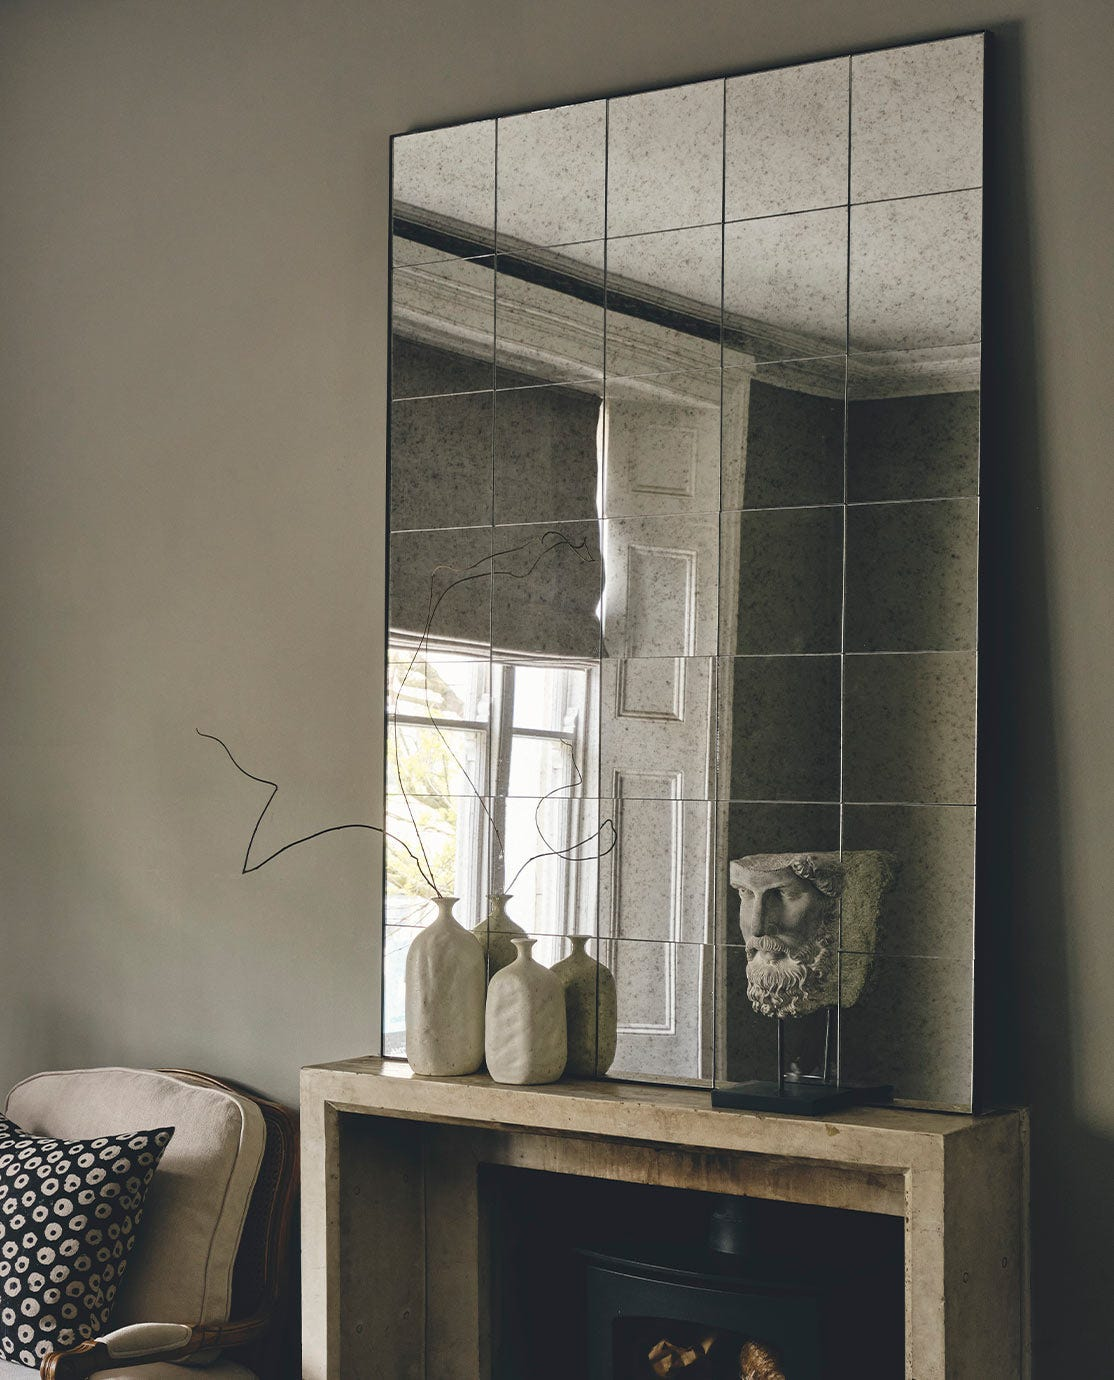 A large rectangular distressed-effect mirror takes centre stage on a console table